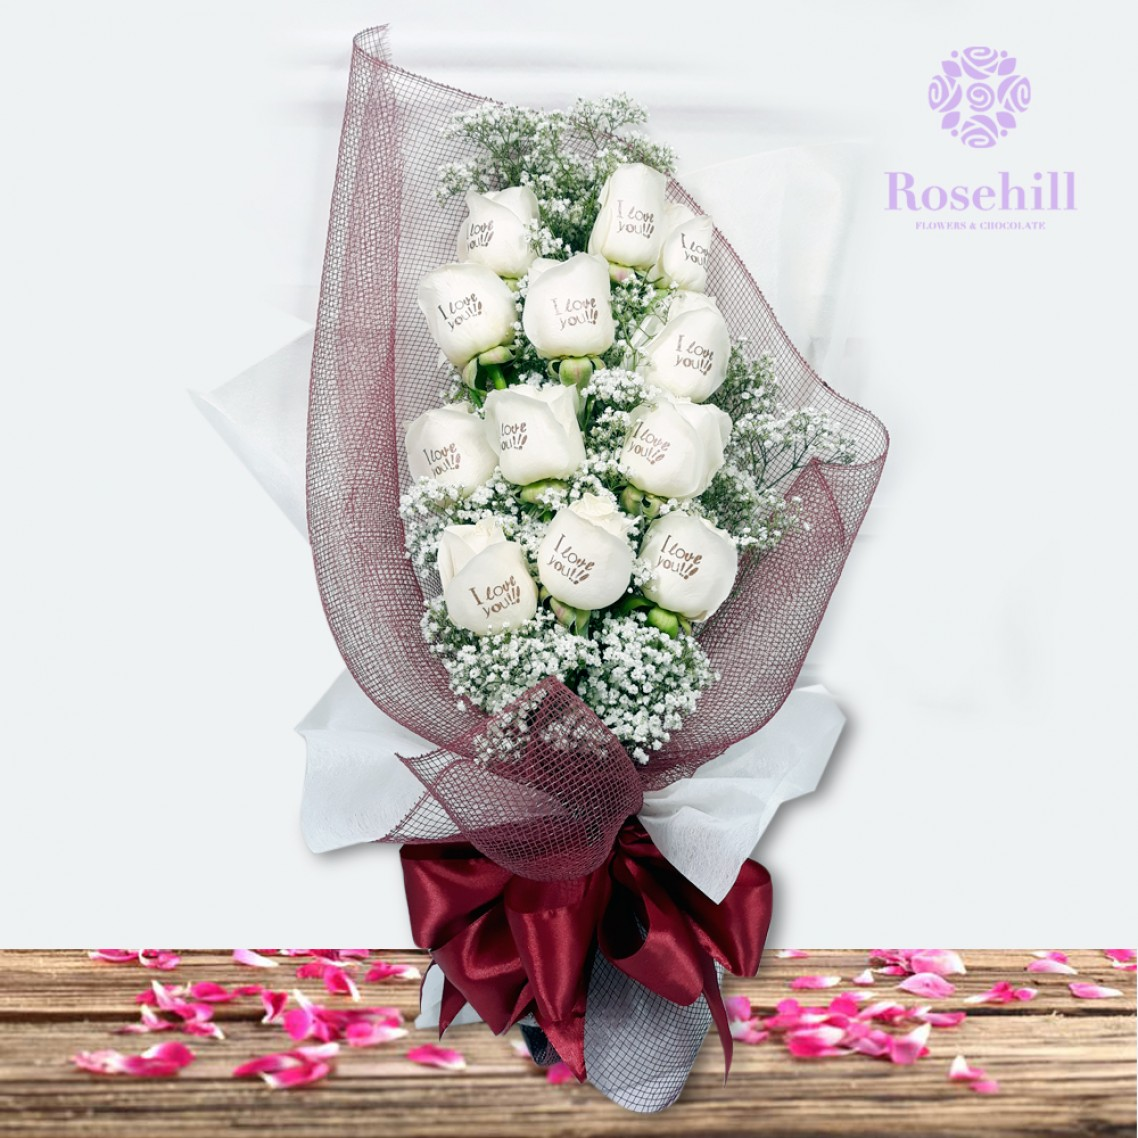 1524674841-h-250-_Rosehill's I Love You Bouquet with Babys Breath-  White.jpg